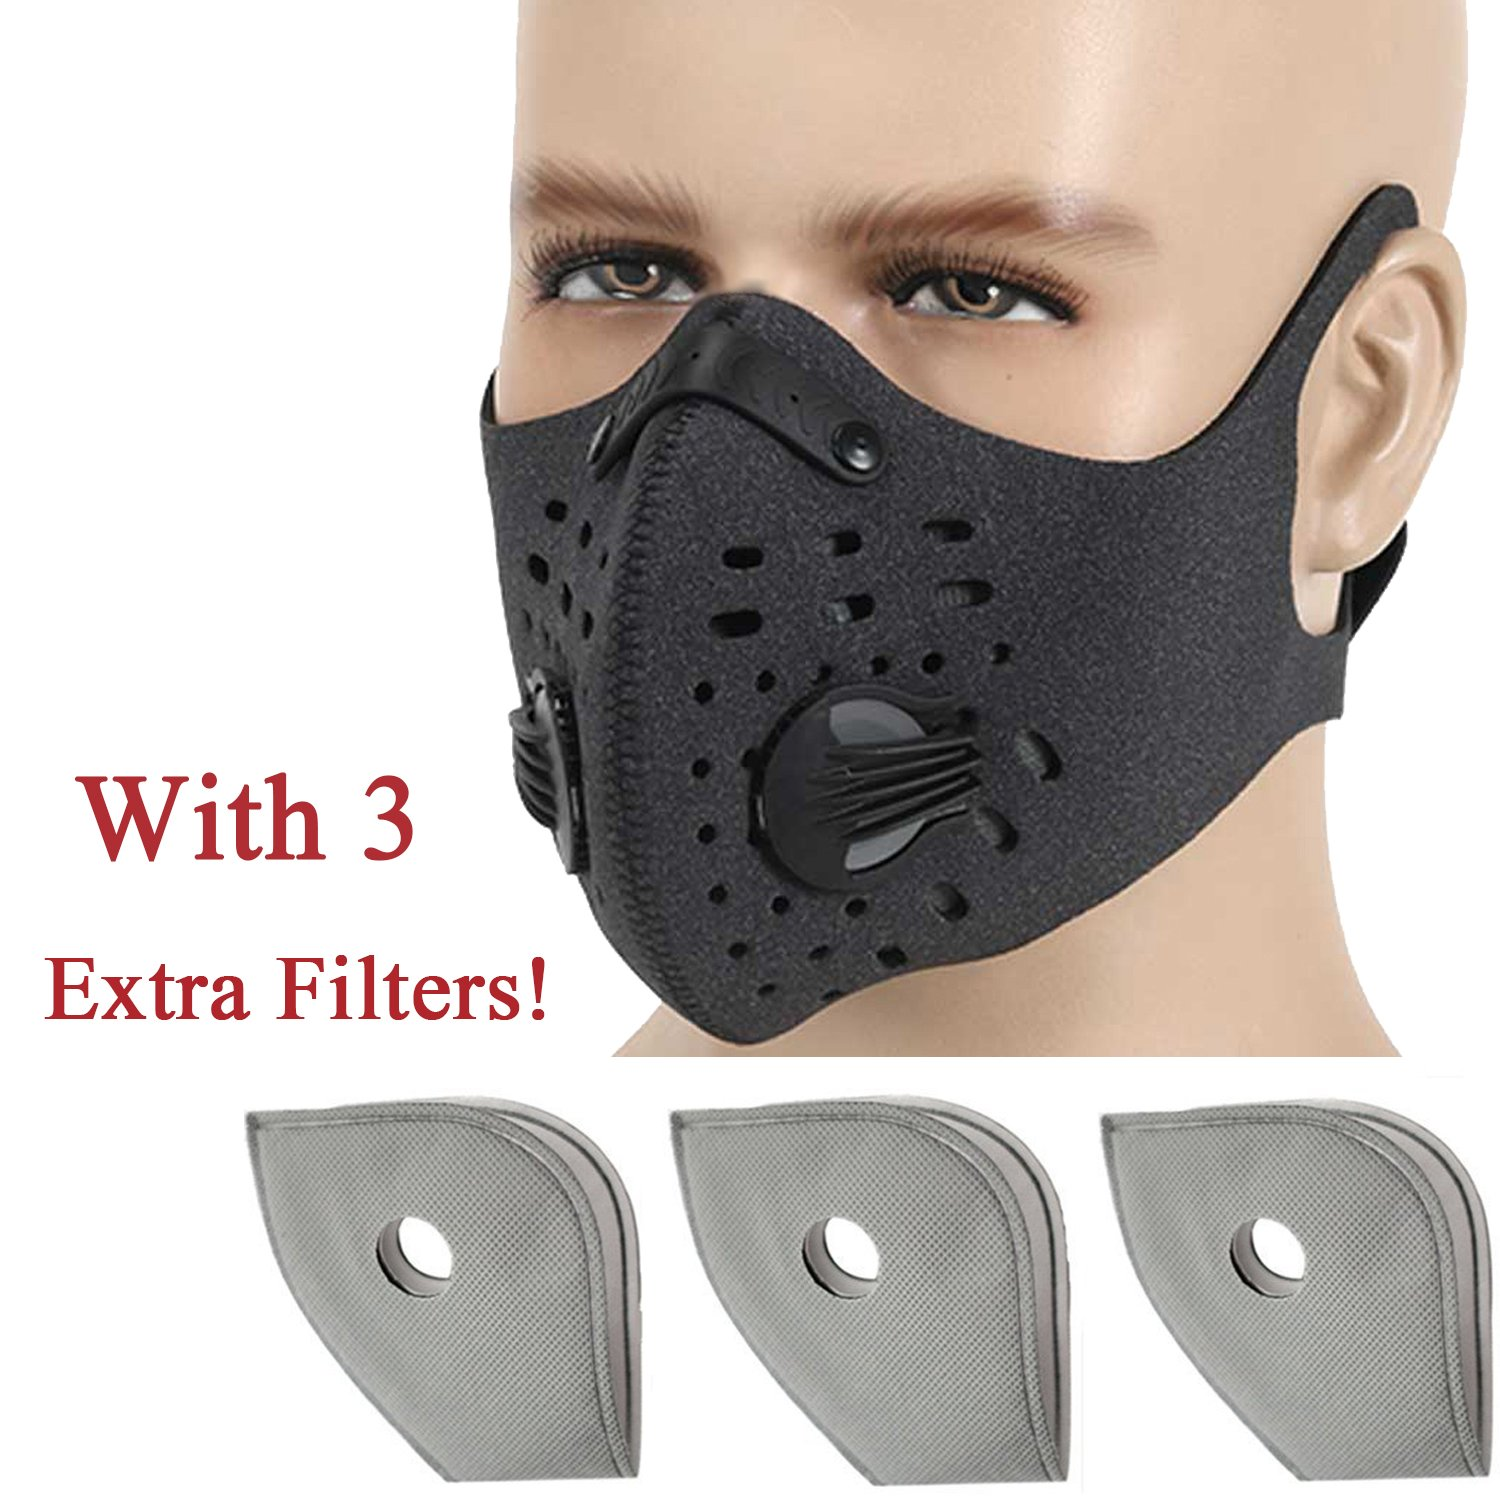 Anqier Dust mask,Activated Carbon Dustproof Mask Exhaust Gas Anti Pollen Allergy PM2.5 Dust Mask-with Extra Filter Cotton Sheet for Cycling, Running,Outdoor Activities